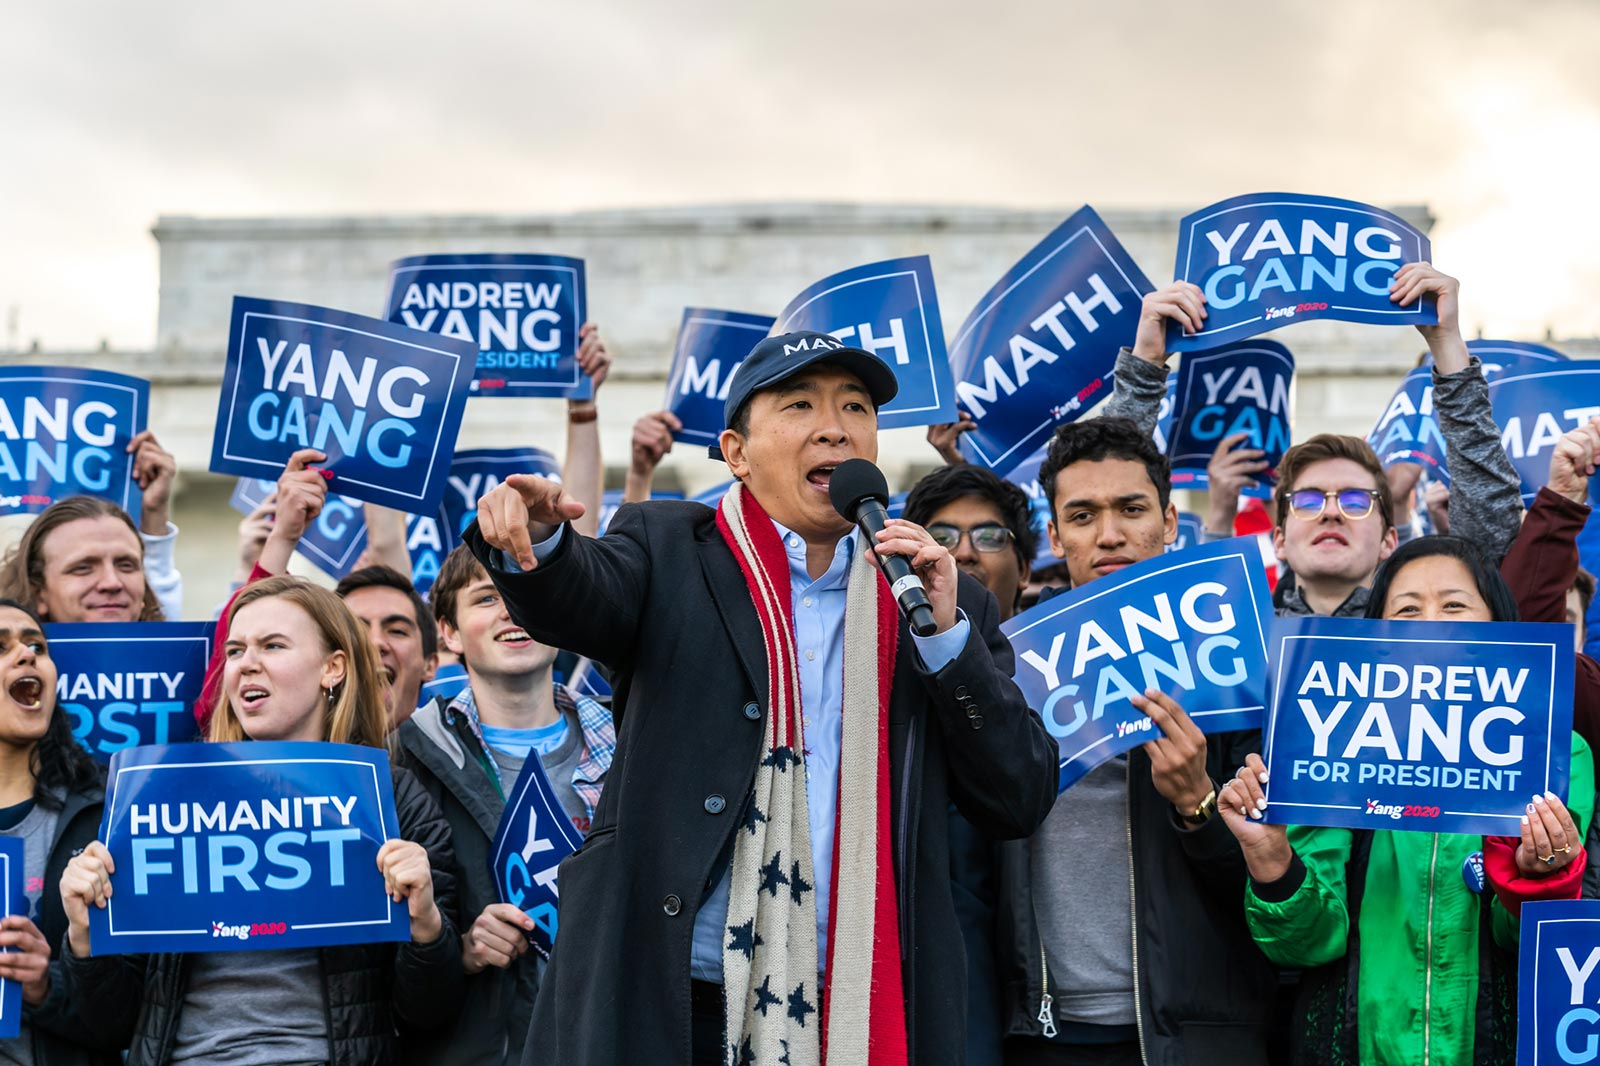 Andrew Yang, holding a microphone at a presidential campaign rally, surrounded by supporters holding Andrew Yang for President signs.